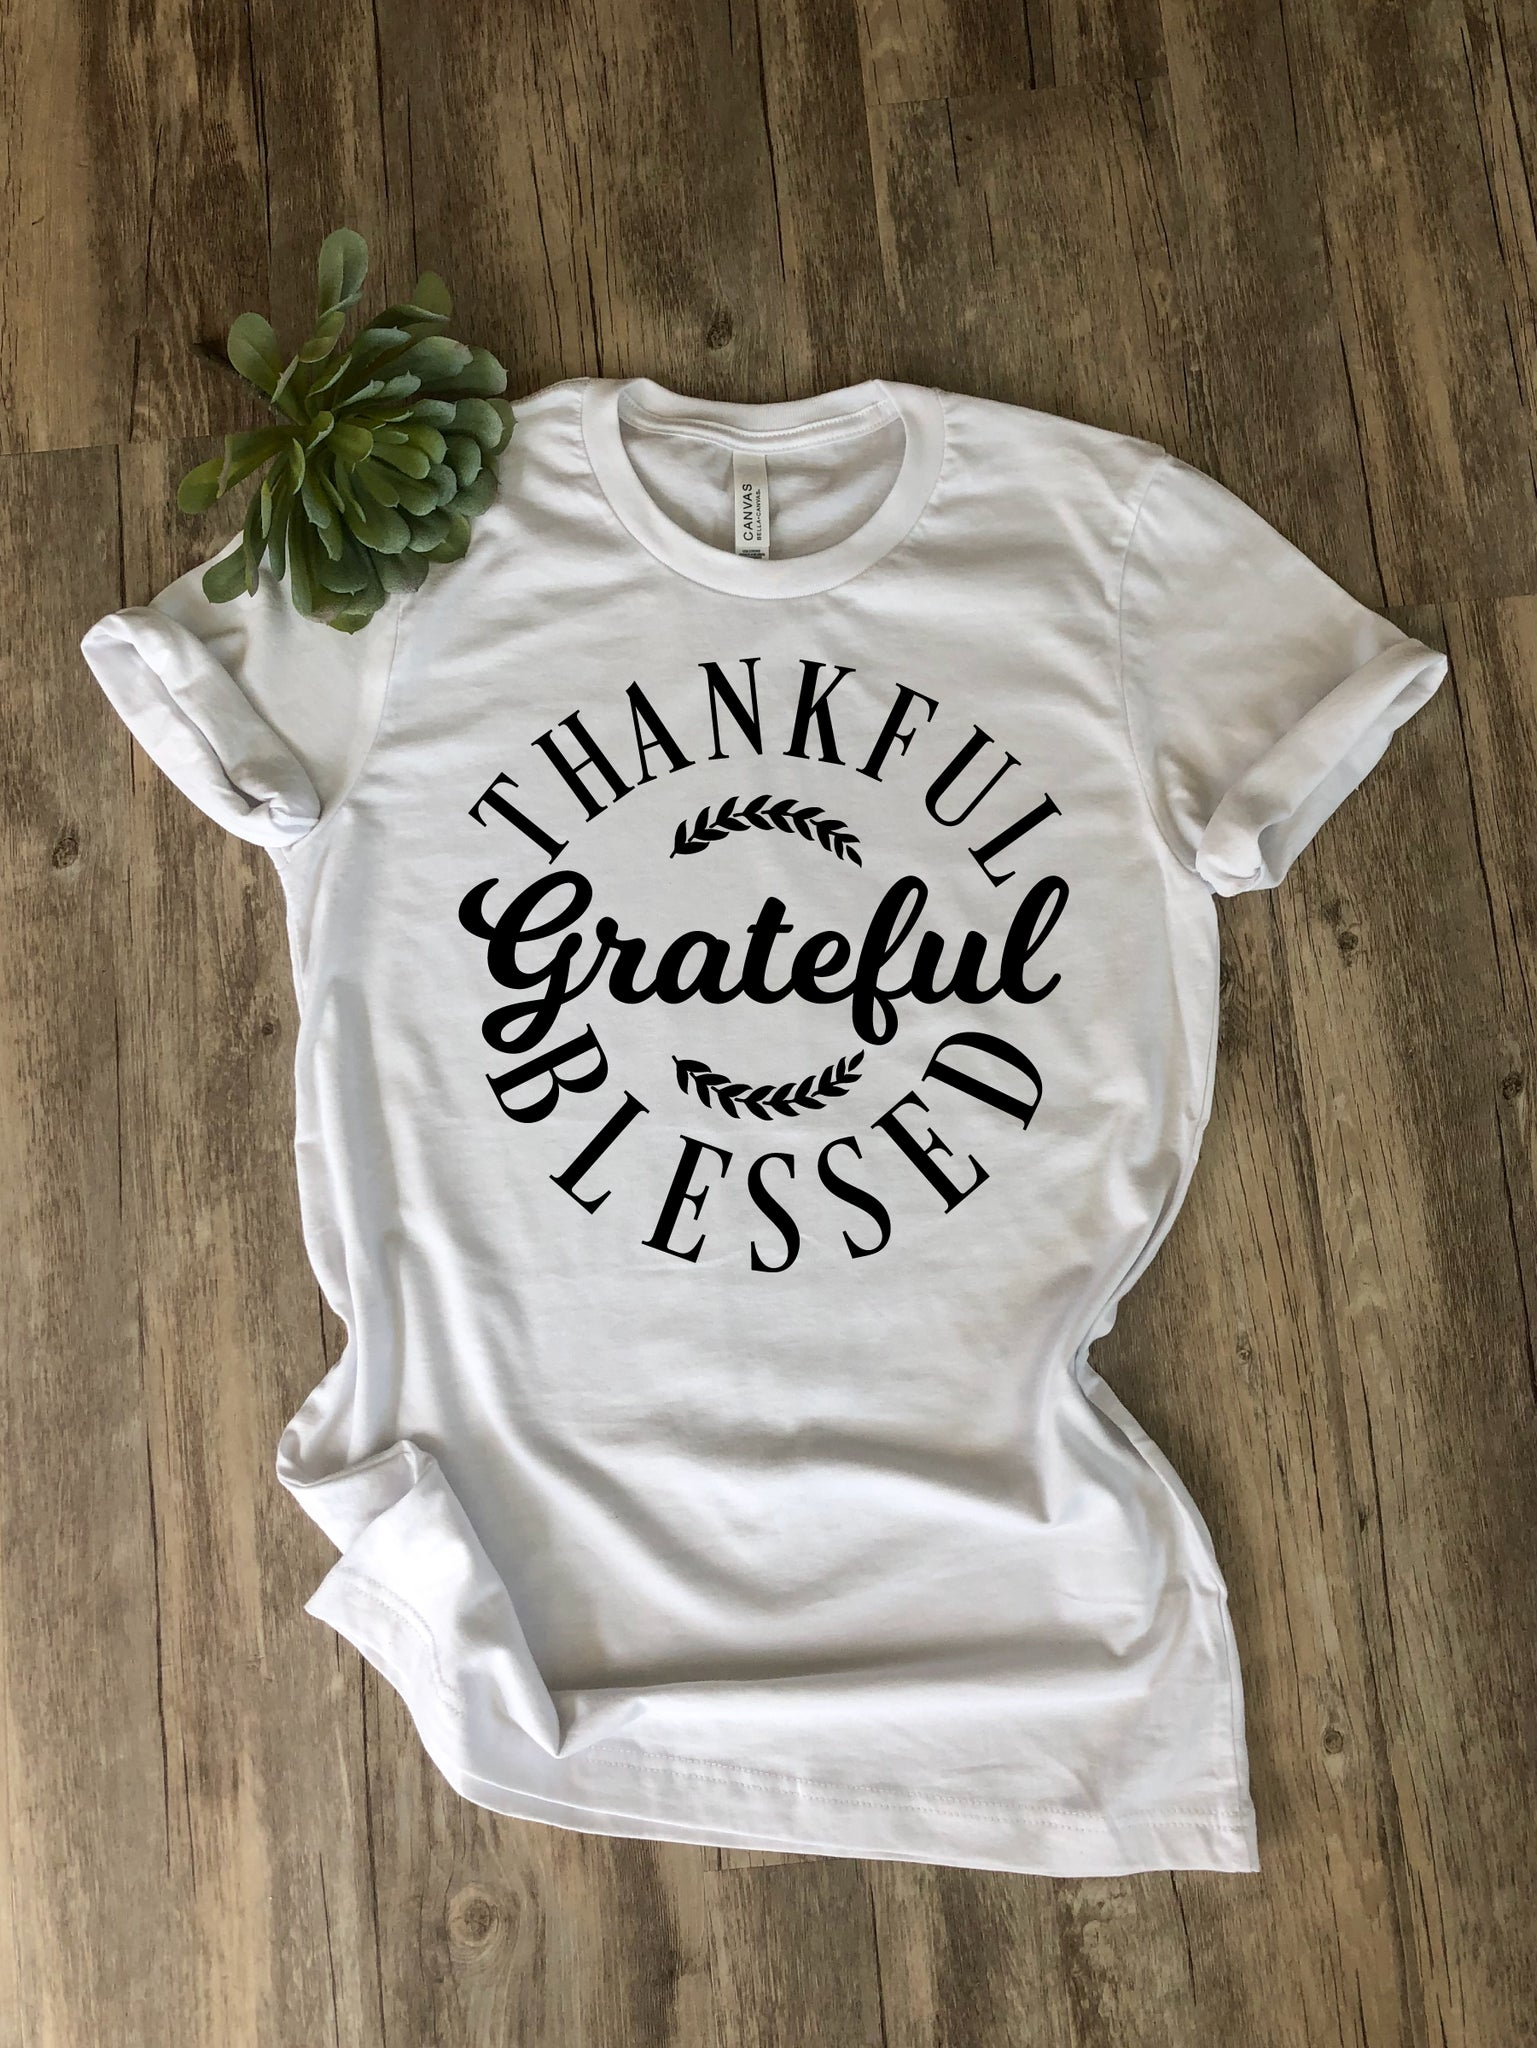 ADULT Thankful Grateful Blessed Tshirt